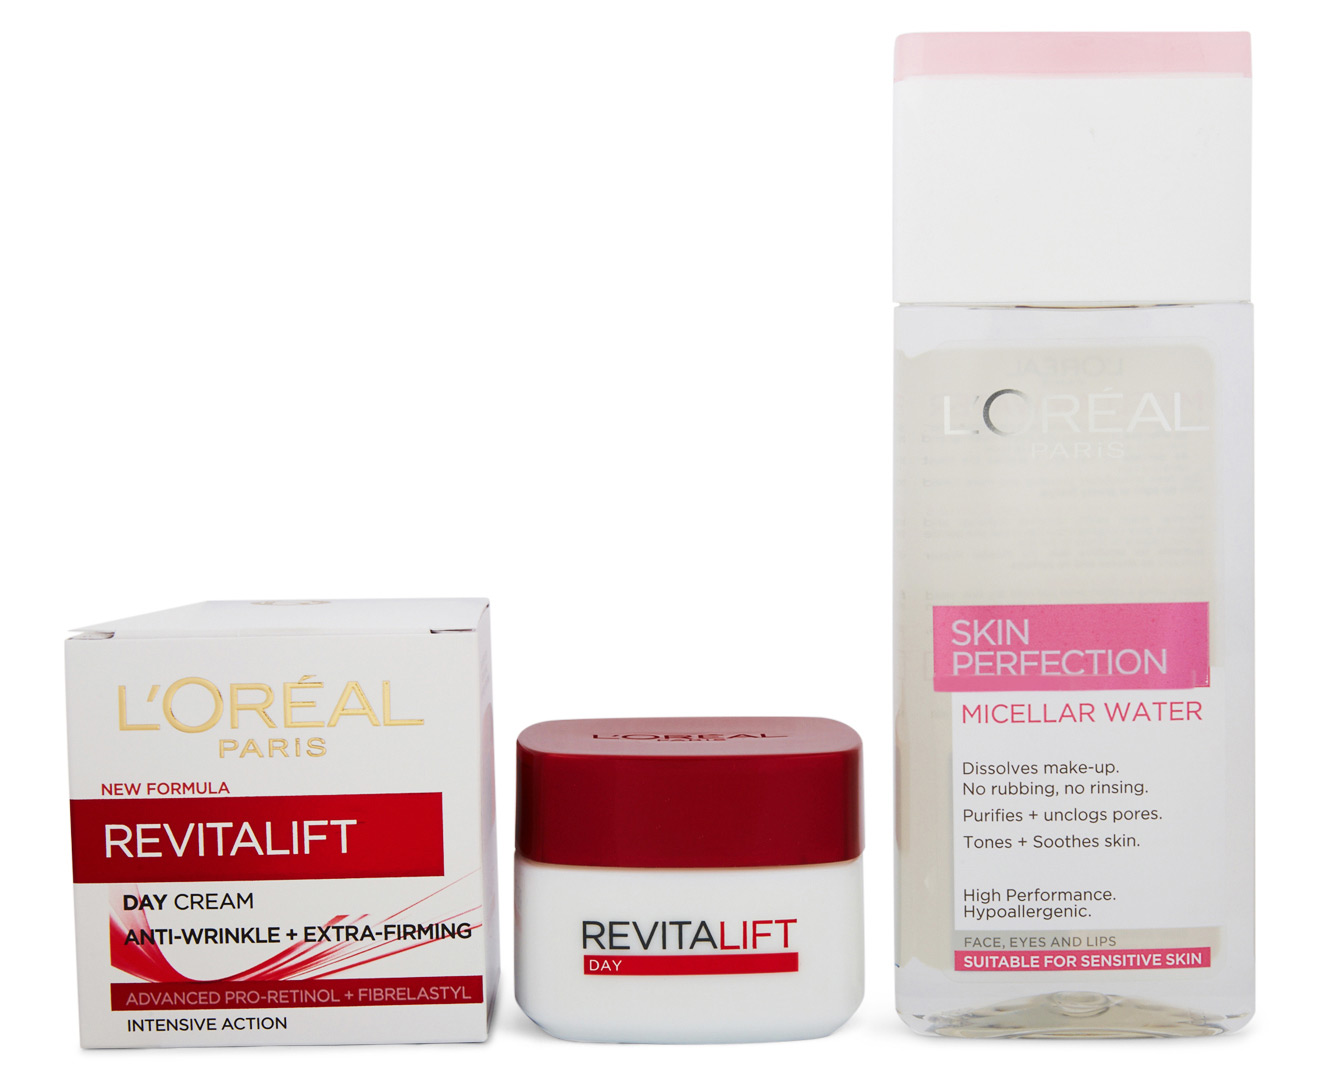 L'Oreal Cleanse + Care Revitalift & Micellar Duo Pack ...